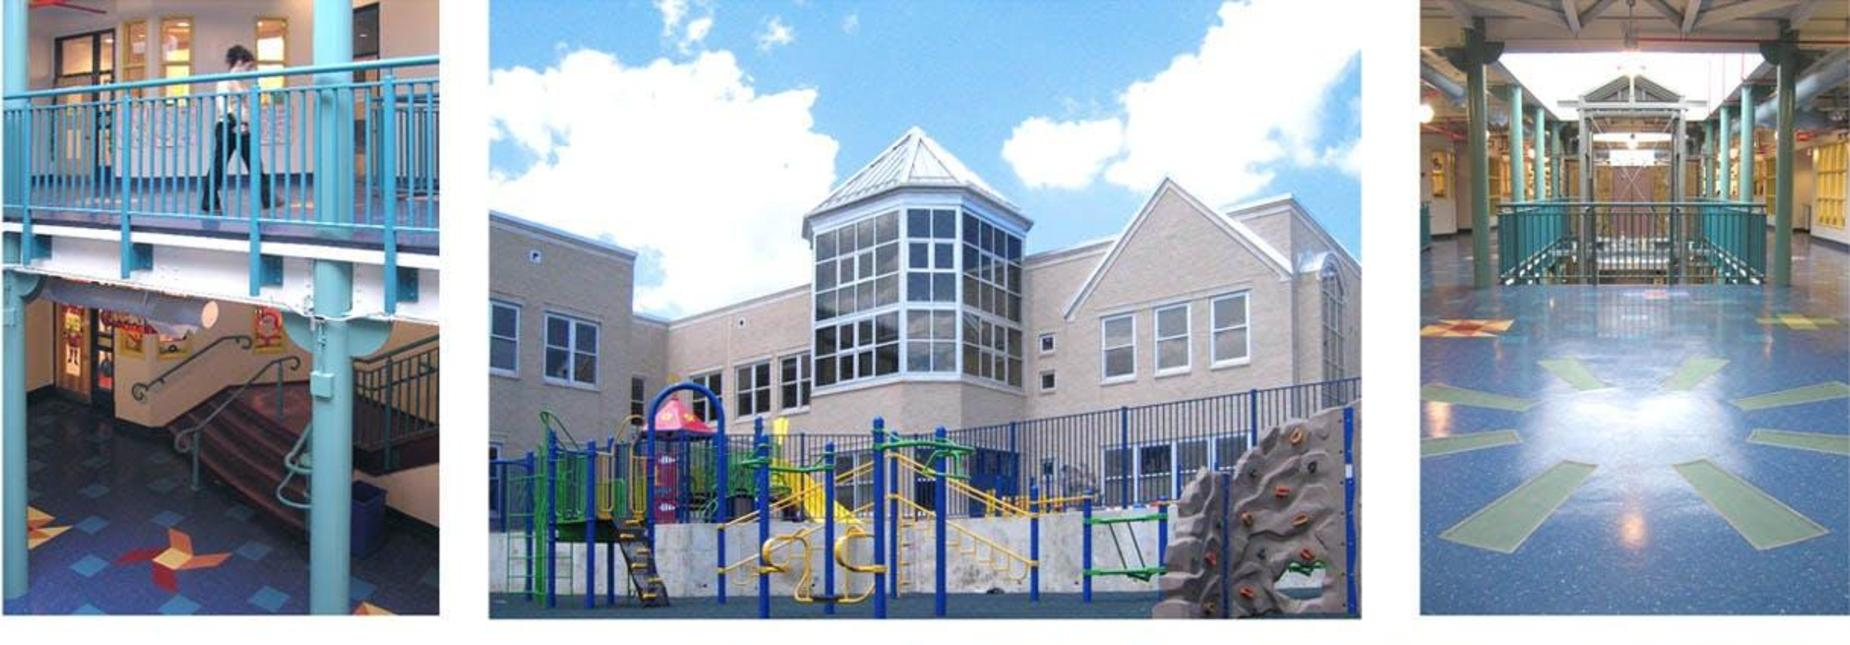 Kindergarten Annex interior and exterior